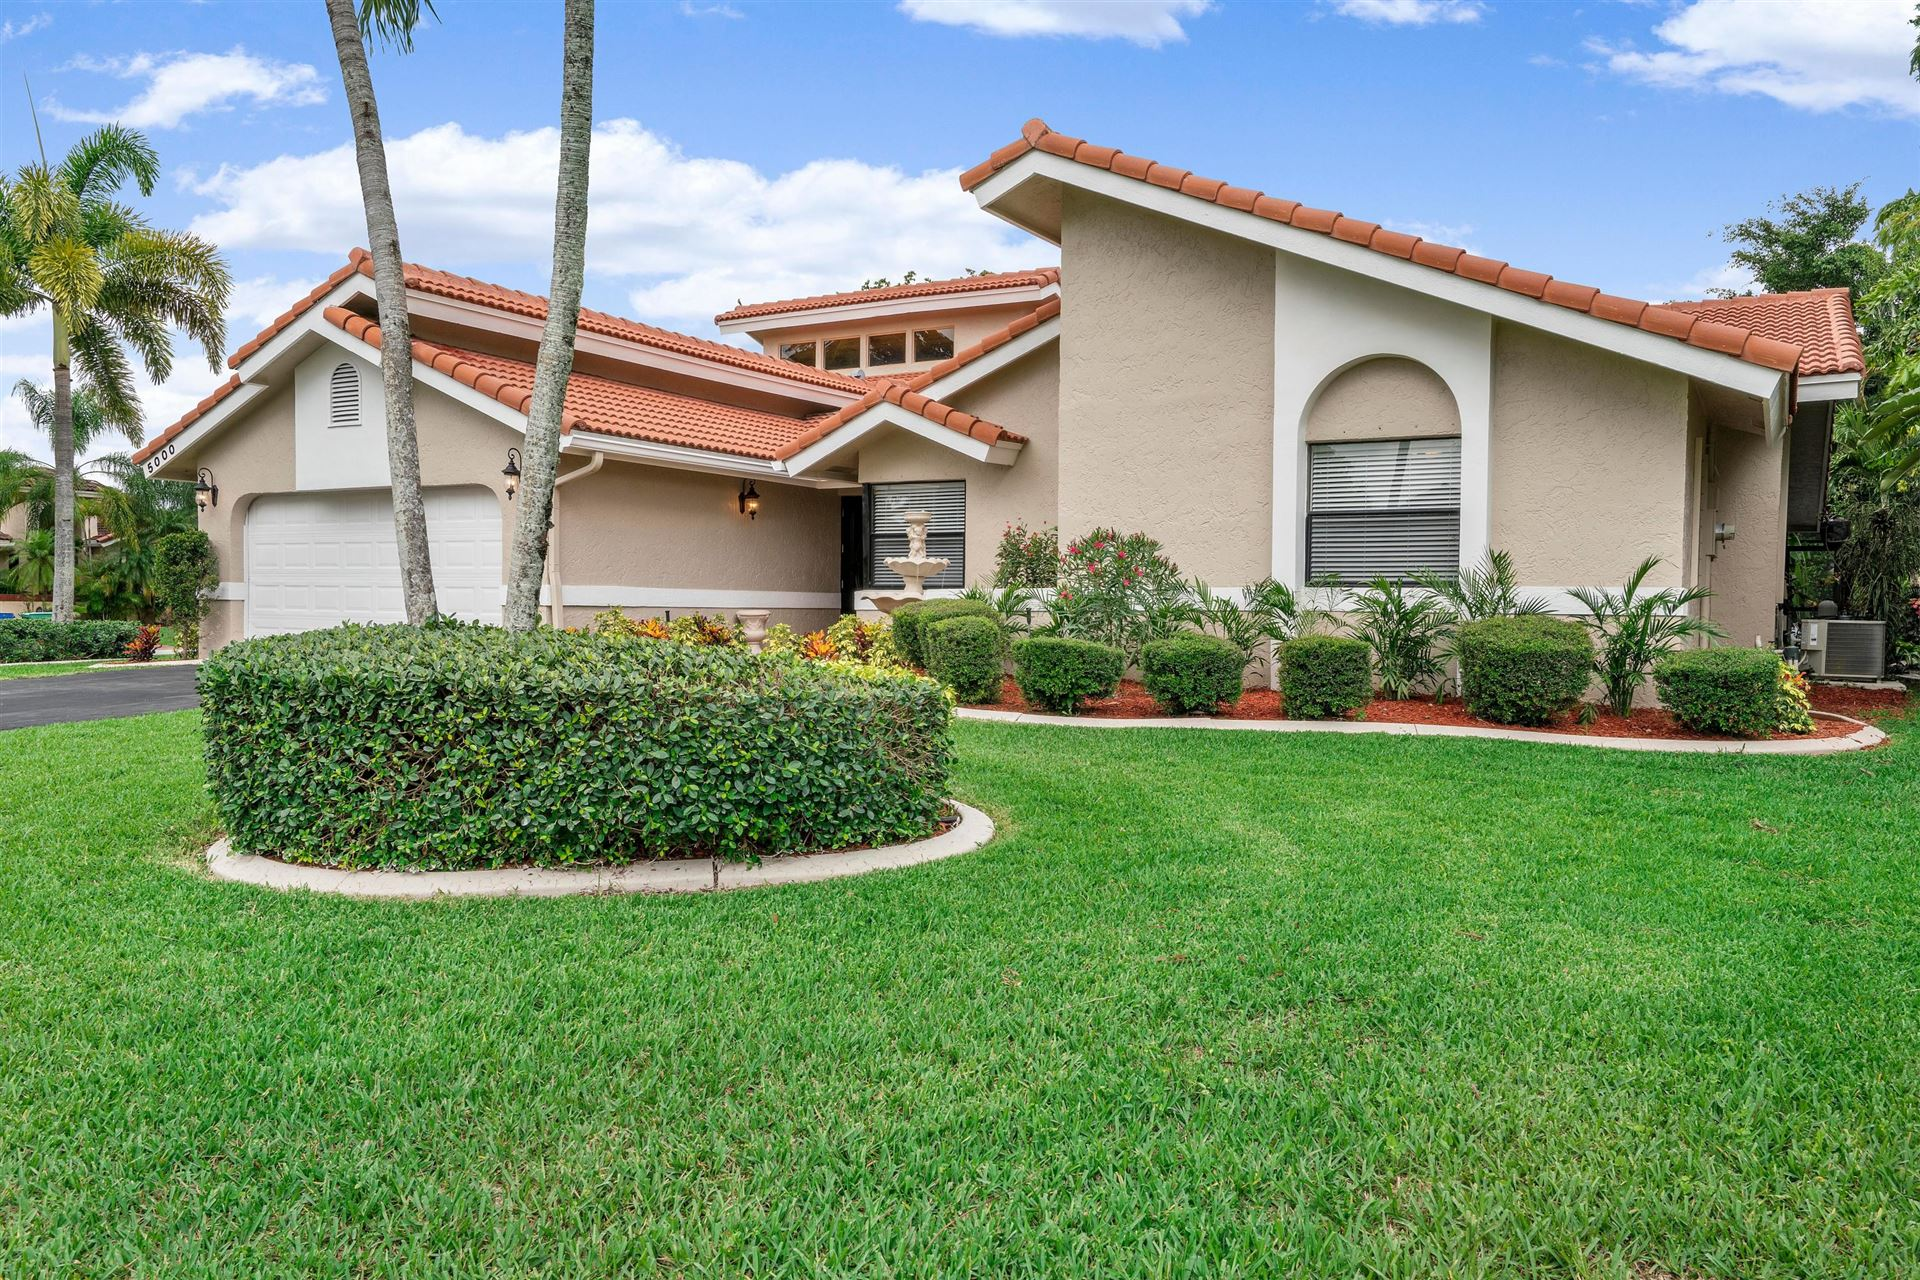 5000 NW 87 Terrace, Coral Springs, FL 33067 - #: RX-10624821